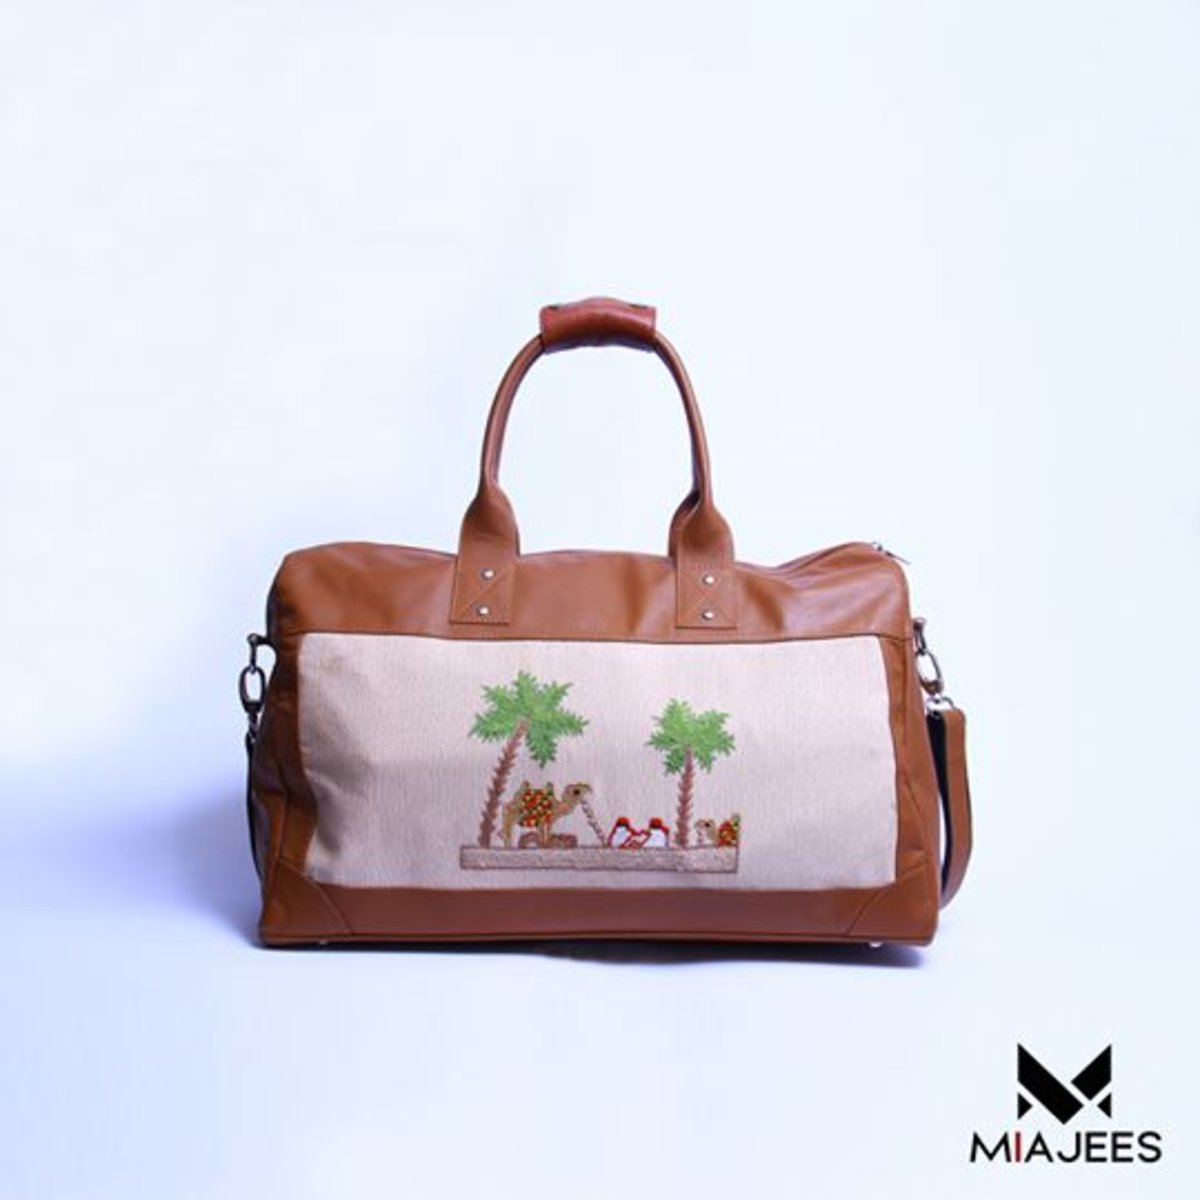 Marciano grande (Small) - Small Duffle Bag, Crossbody Bag - Brown - Genuine Leather Handcrafted